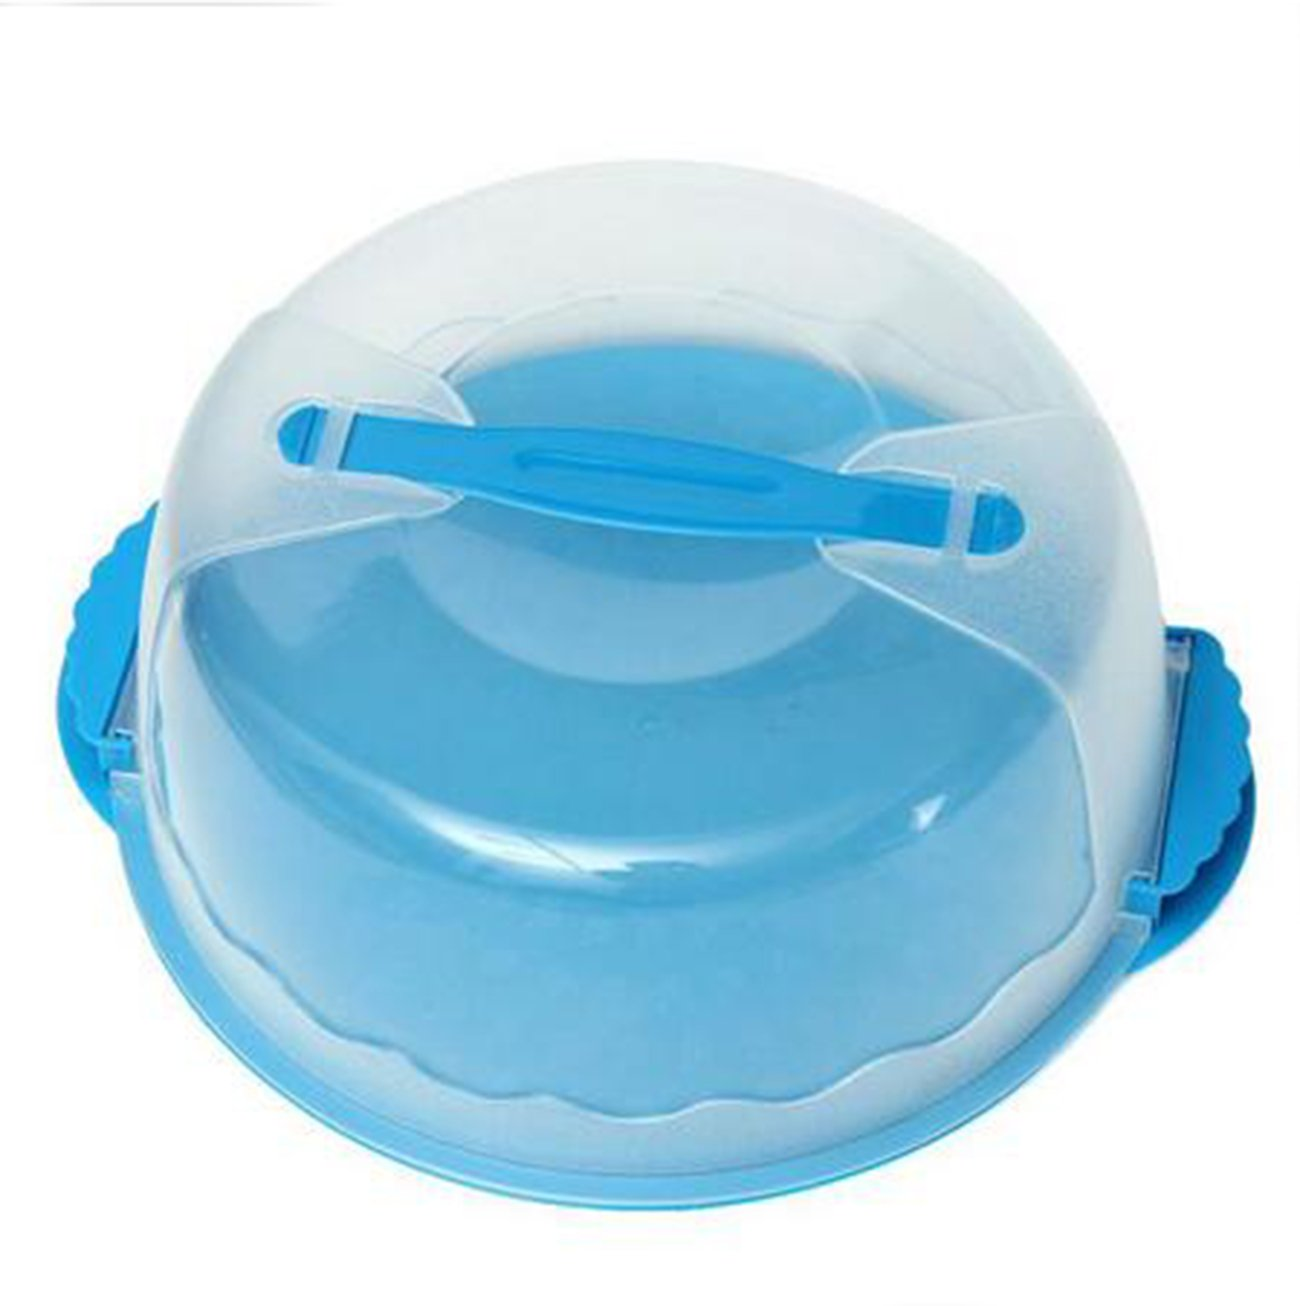 Yosoo Portable Round Clear Cake Caddy Carrier Storage Container Server with Locking Lid and Handle - Assorted Colors - 10 Inch Wide (blue)